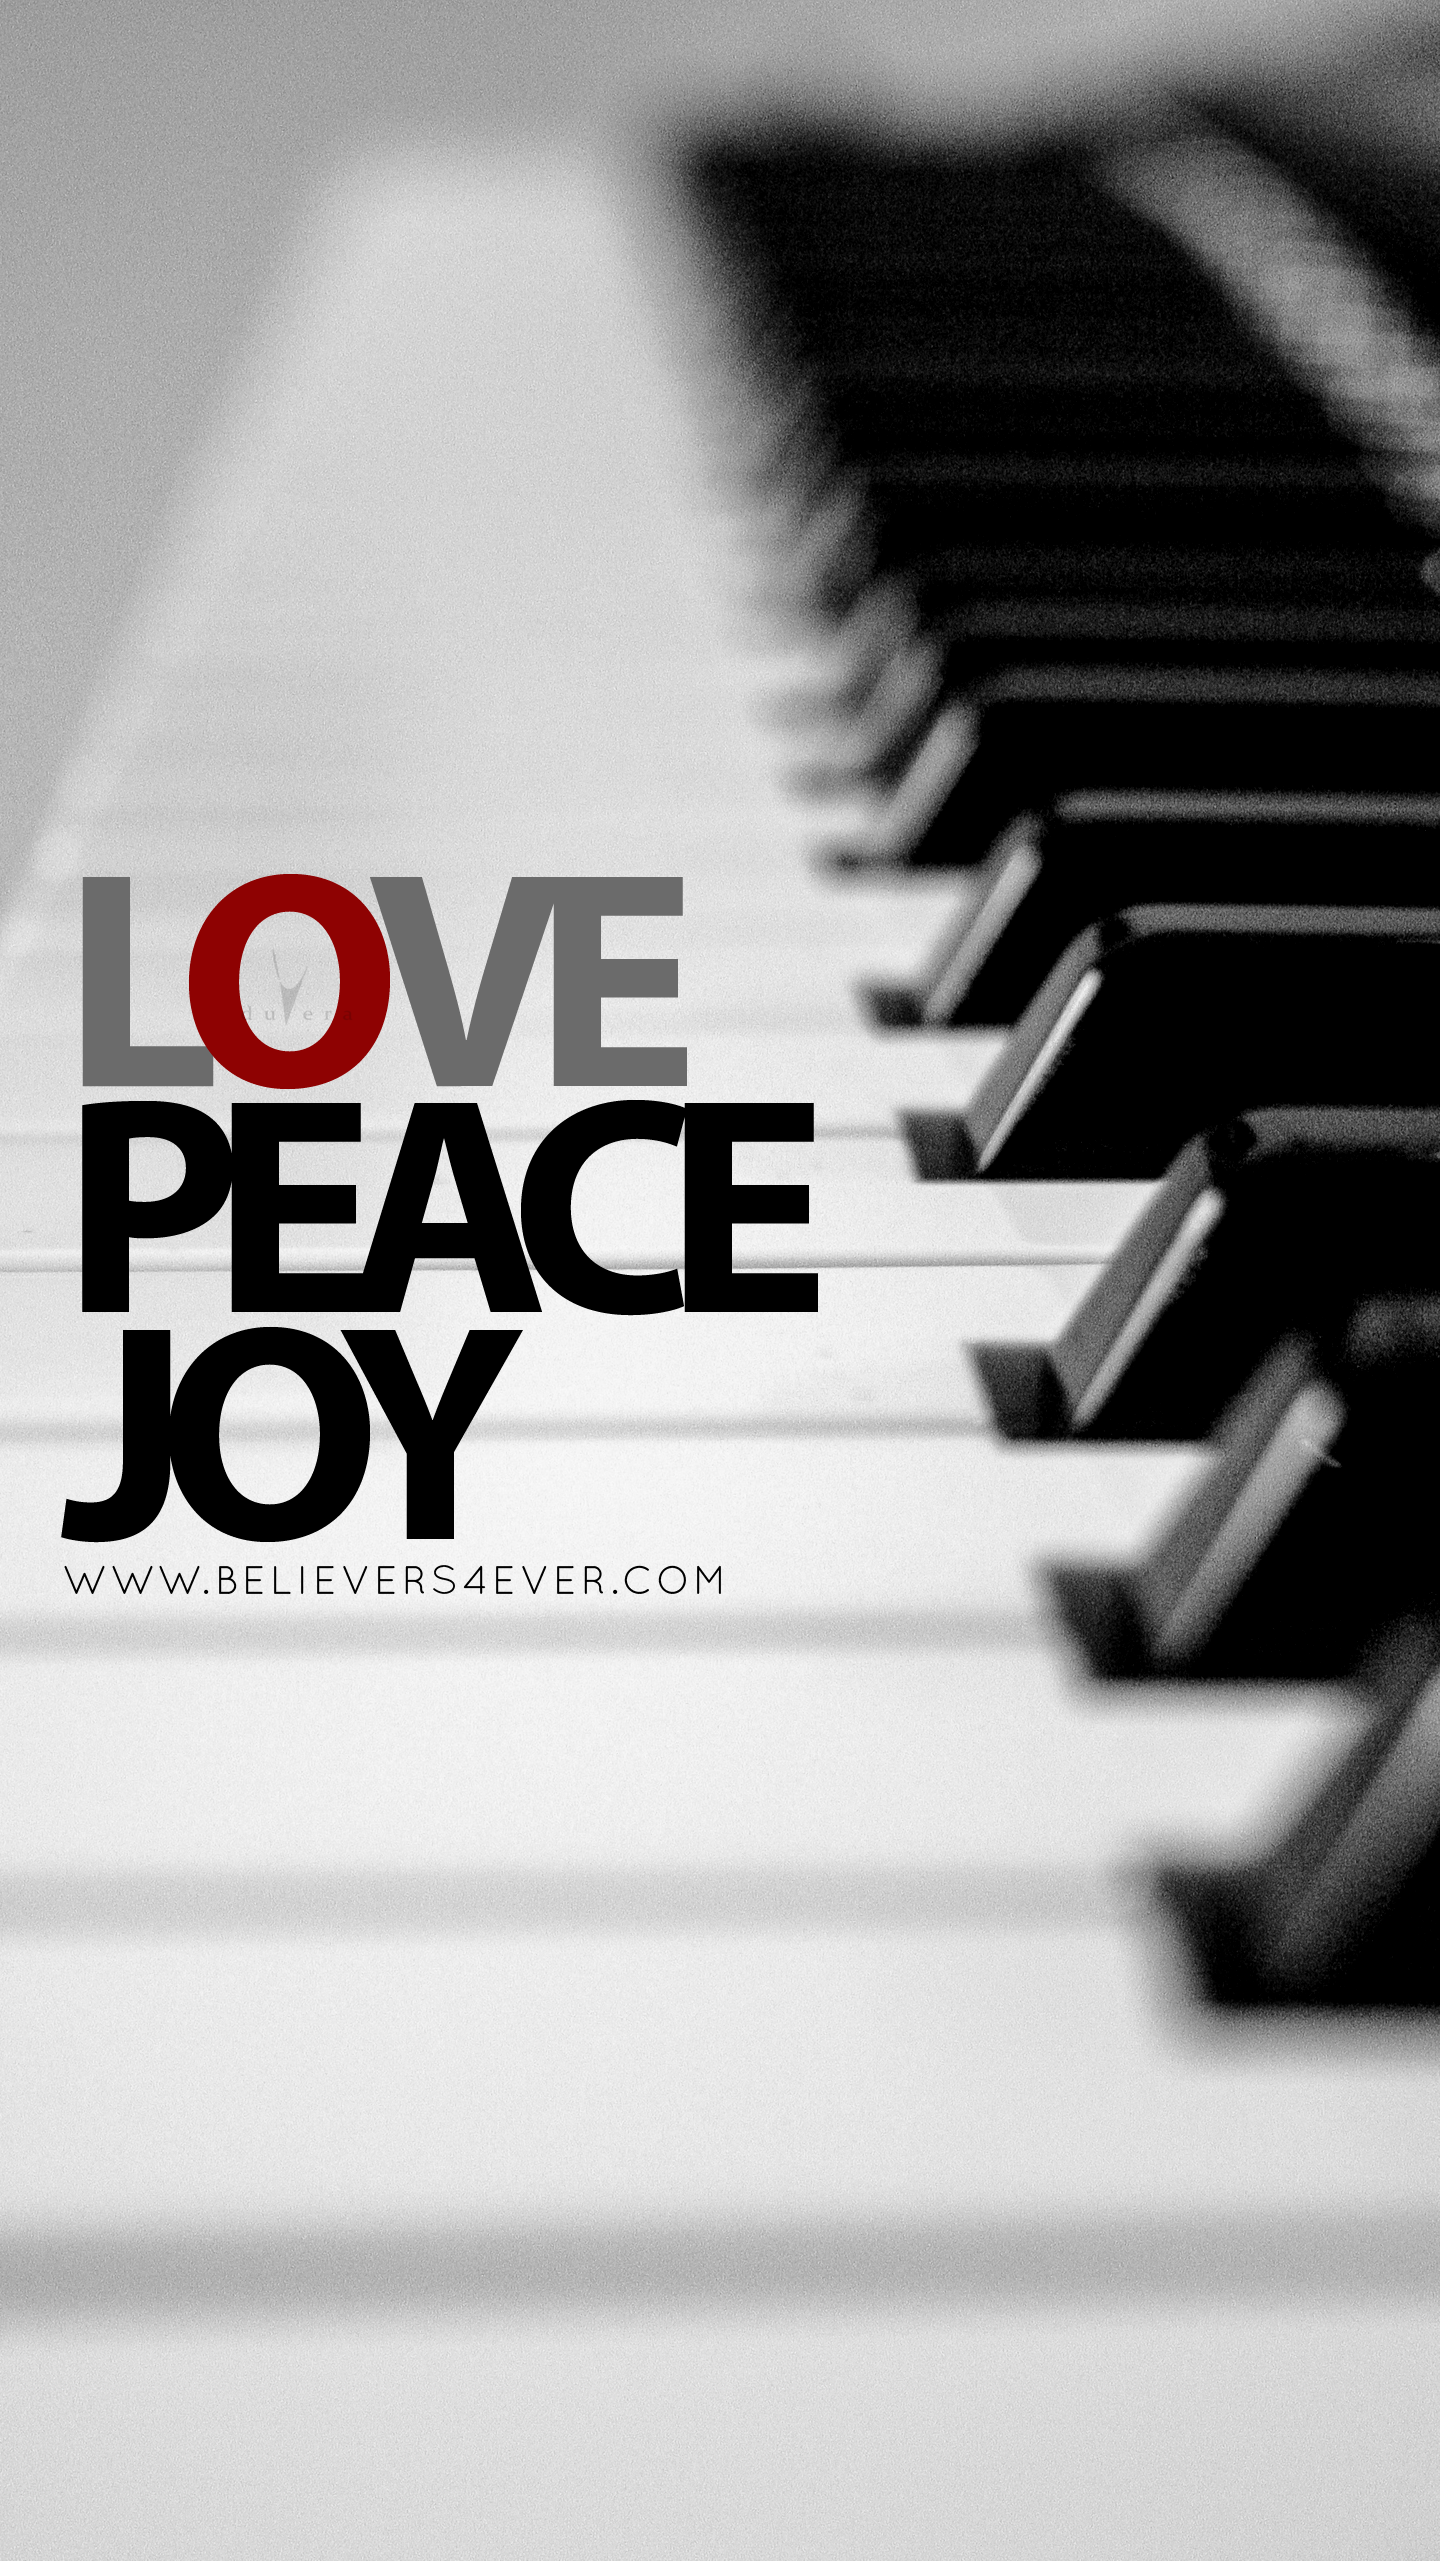 Love Peace Joy Christian Mobile Lock Screen Wallpaper